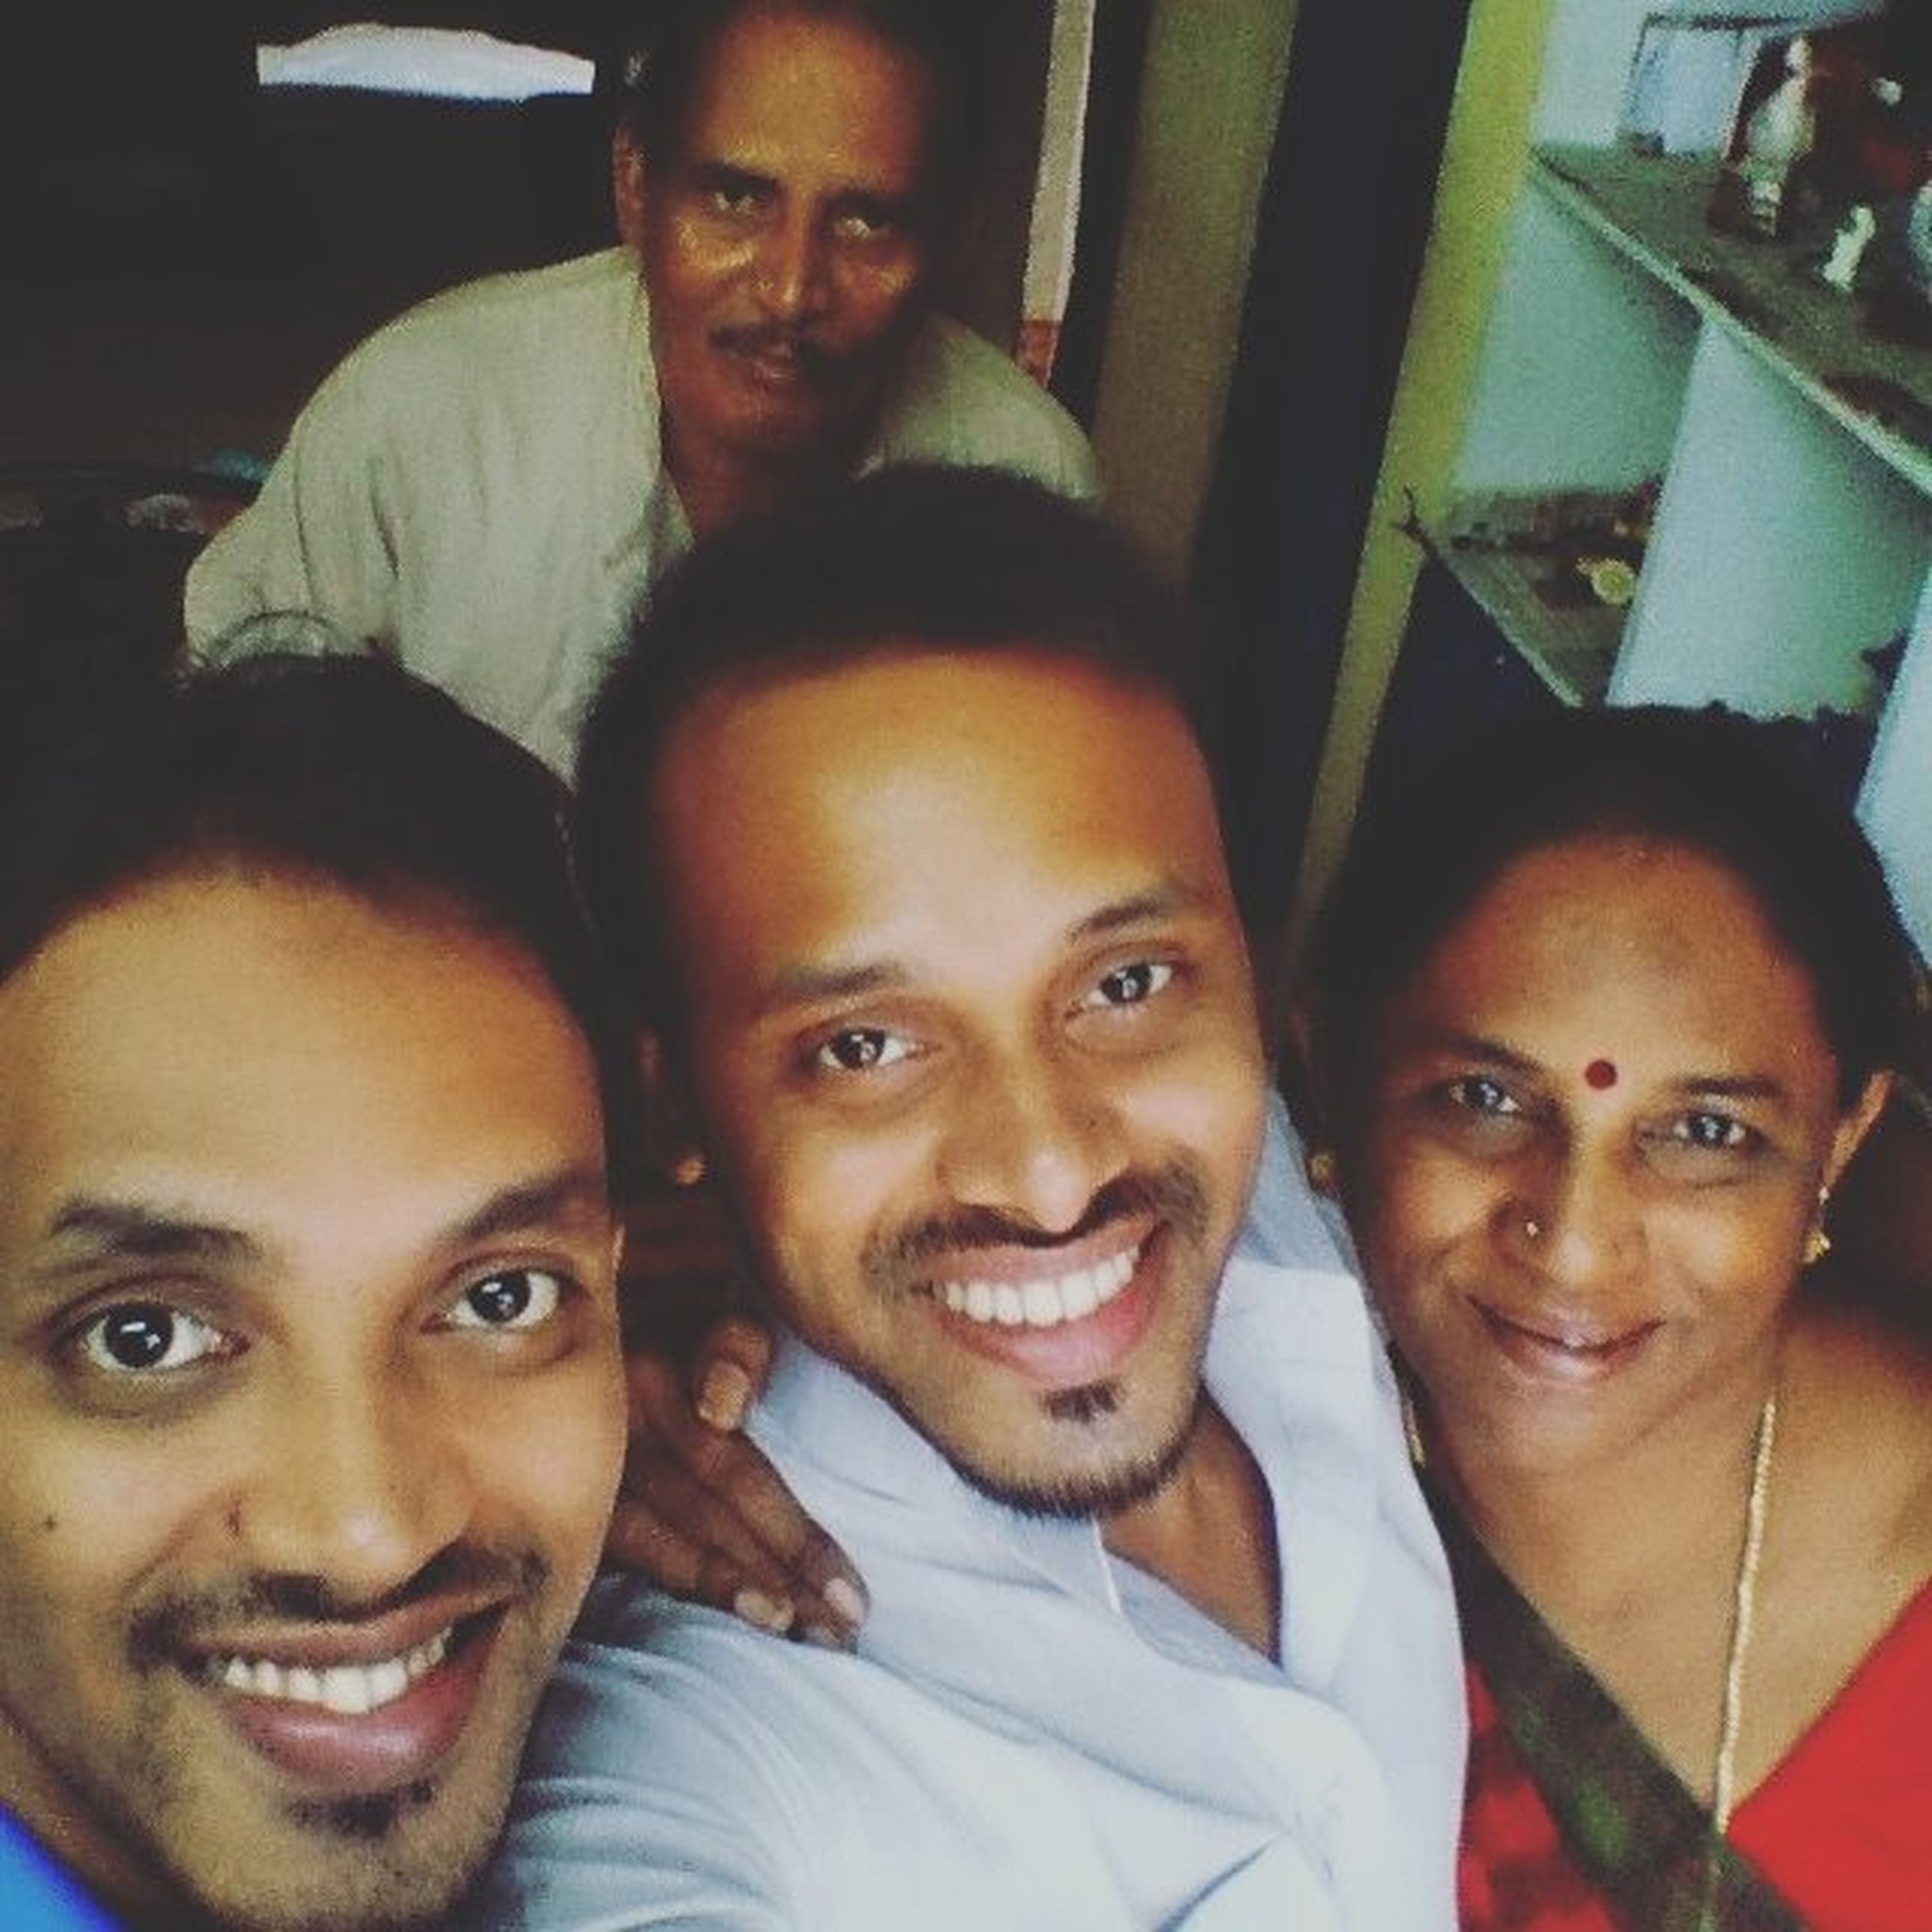 A Family Selfie on my Birthday.. Togethrness Family Loveformyfamily Fun Selfie ✌ ThatsMe People People Of EyeEm